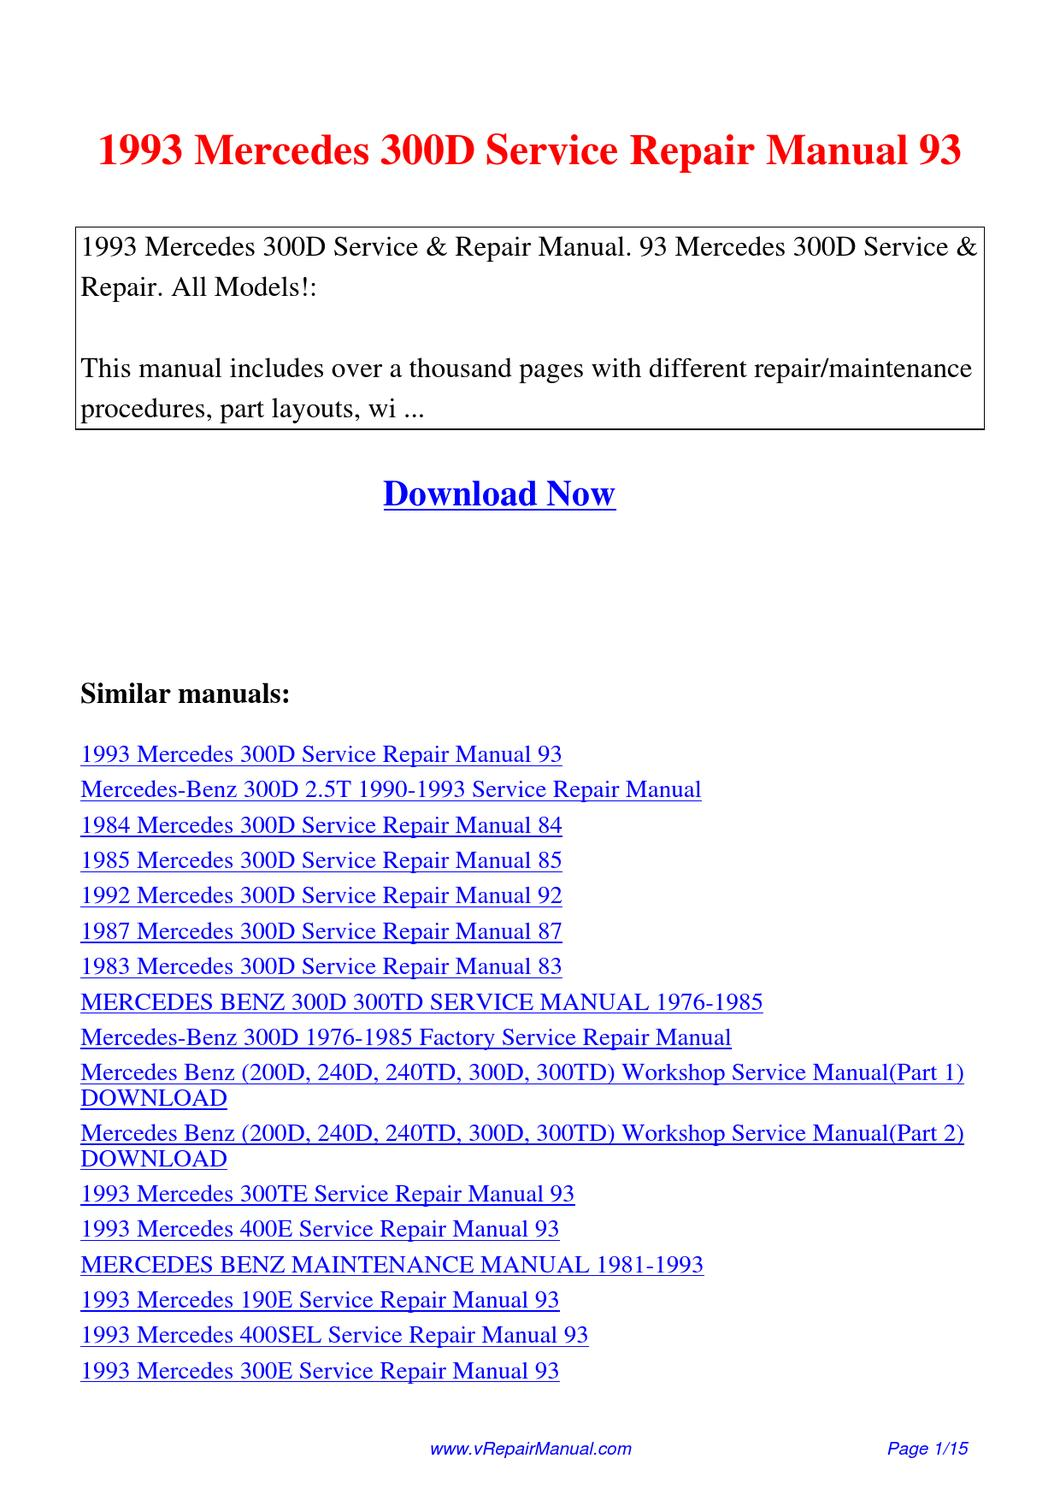 Mercedes Benz 230 1976 1981 Factory Service Repair Manual Auto W115 Wiring Diagram 1993 300d 93 By Yuan Wang